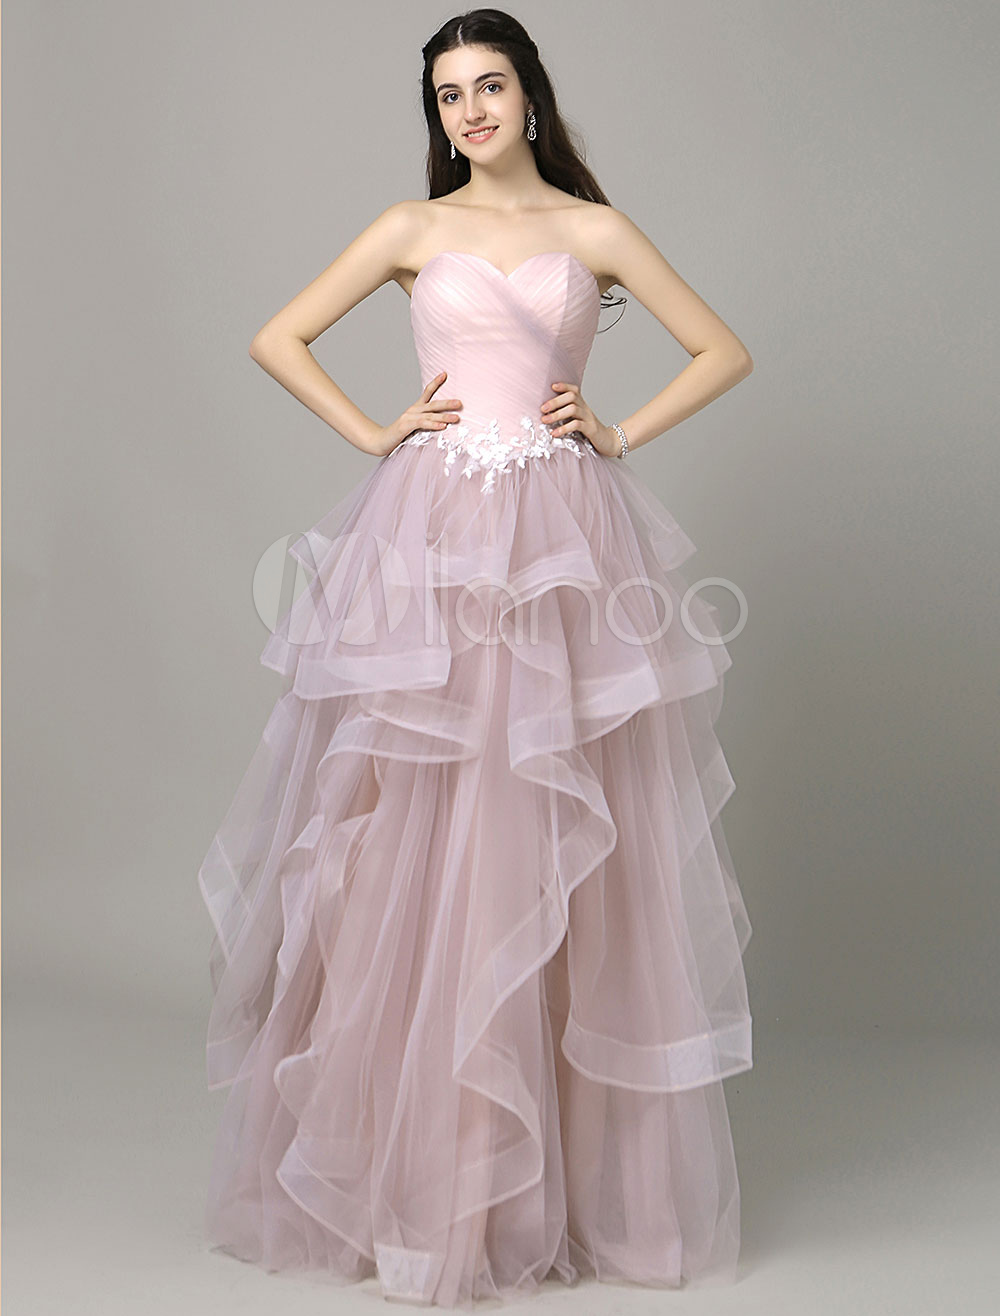 Pink Prom Dress Sweetheart Pleated Strapless Tiered Tulle Floor-Length A-Line Quinceanera Dress